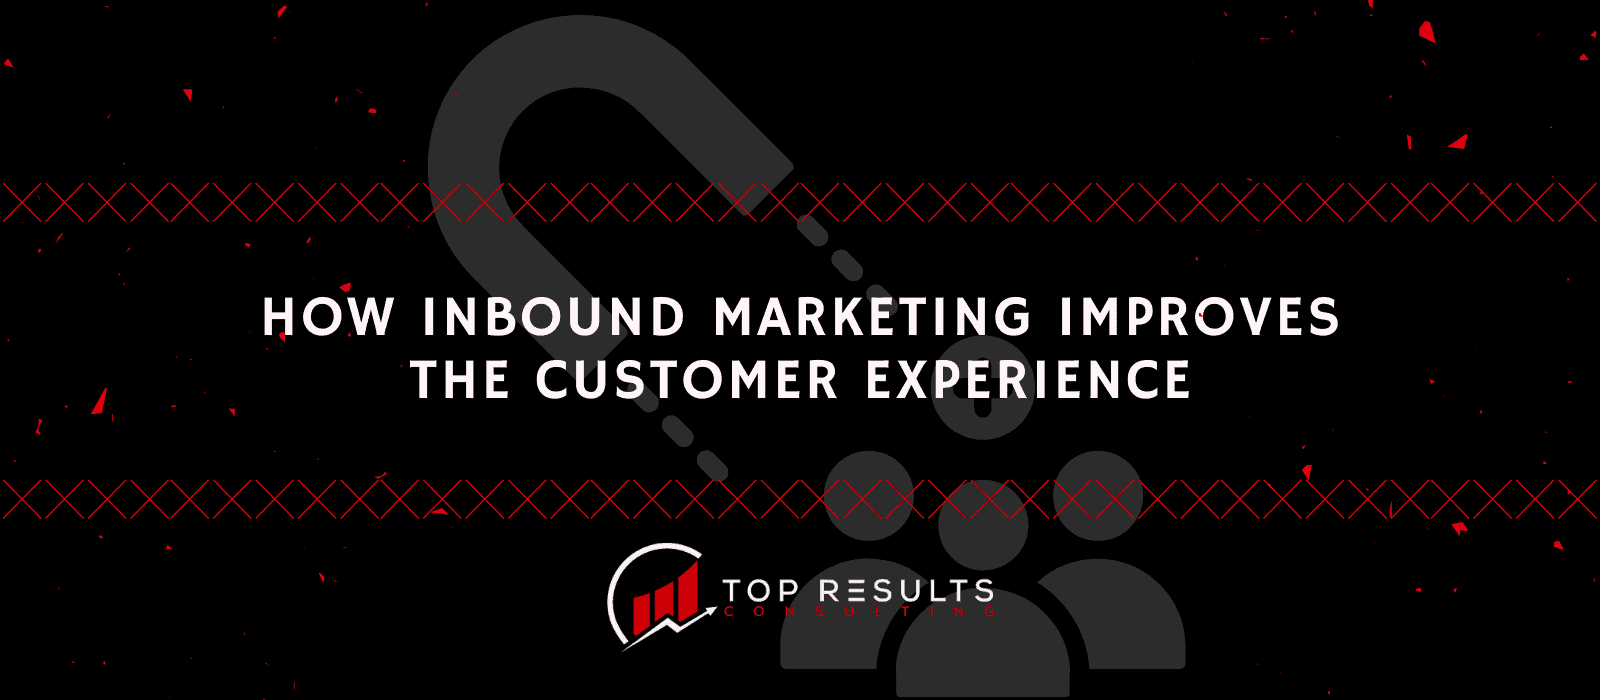 Inbound Marketing Improves the Customer Experience